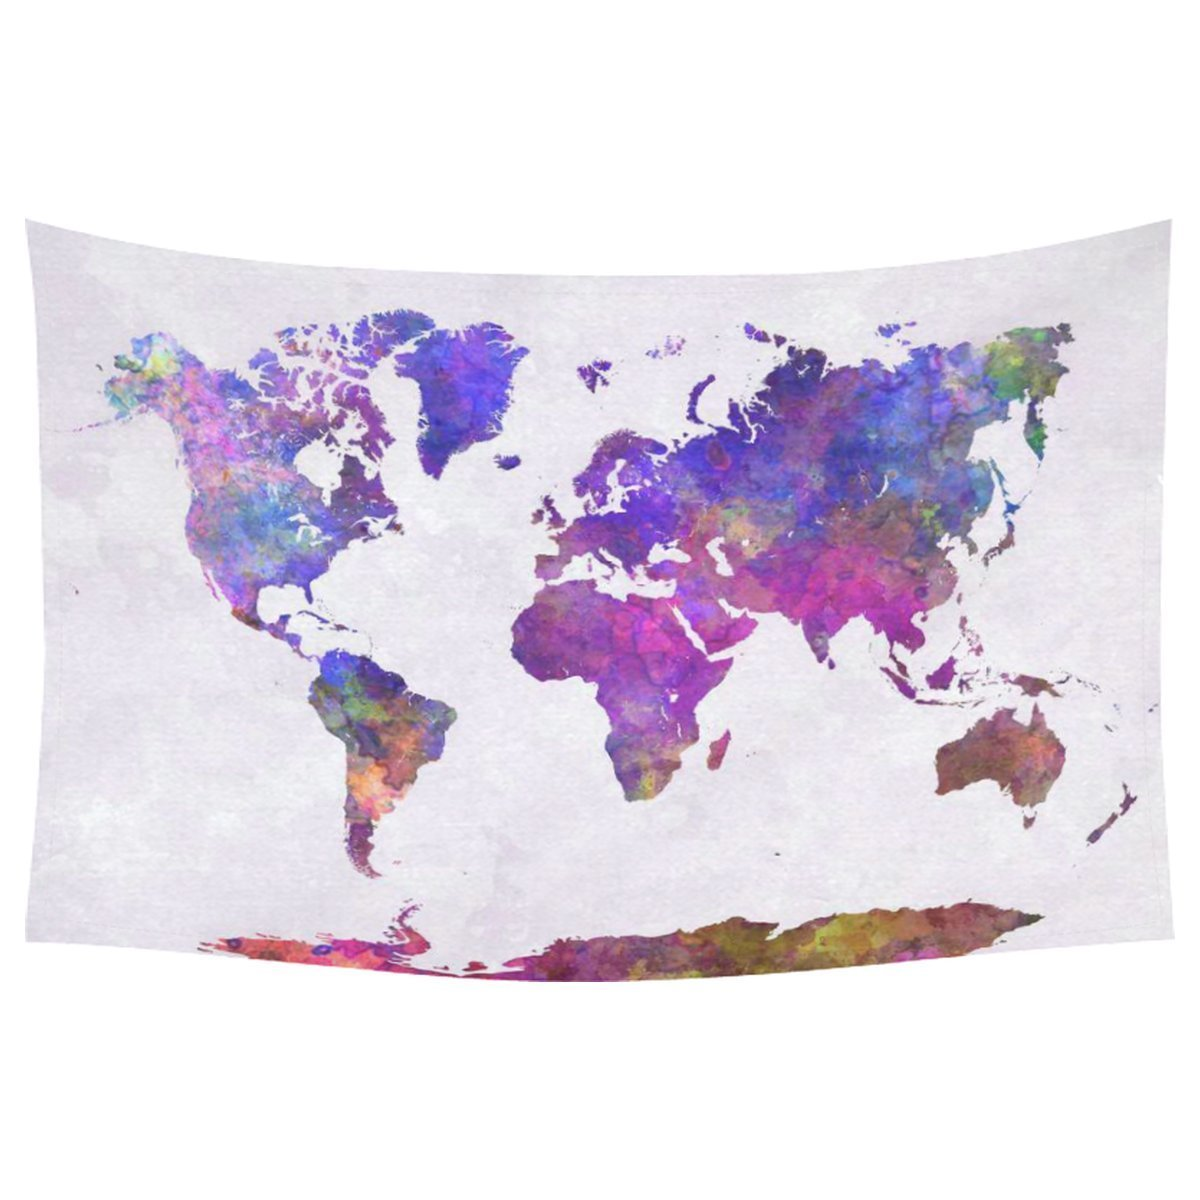 GCKG Abstract Art Splatter Painting Home Decor, Watercolor World Map Tapestry Wall Hanging Art Sets 90 X 60 Inches by GCKG